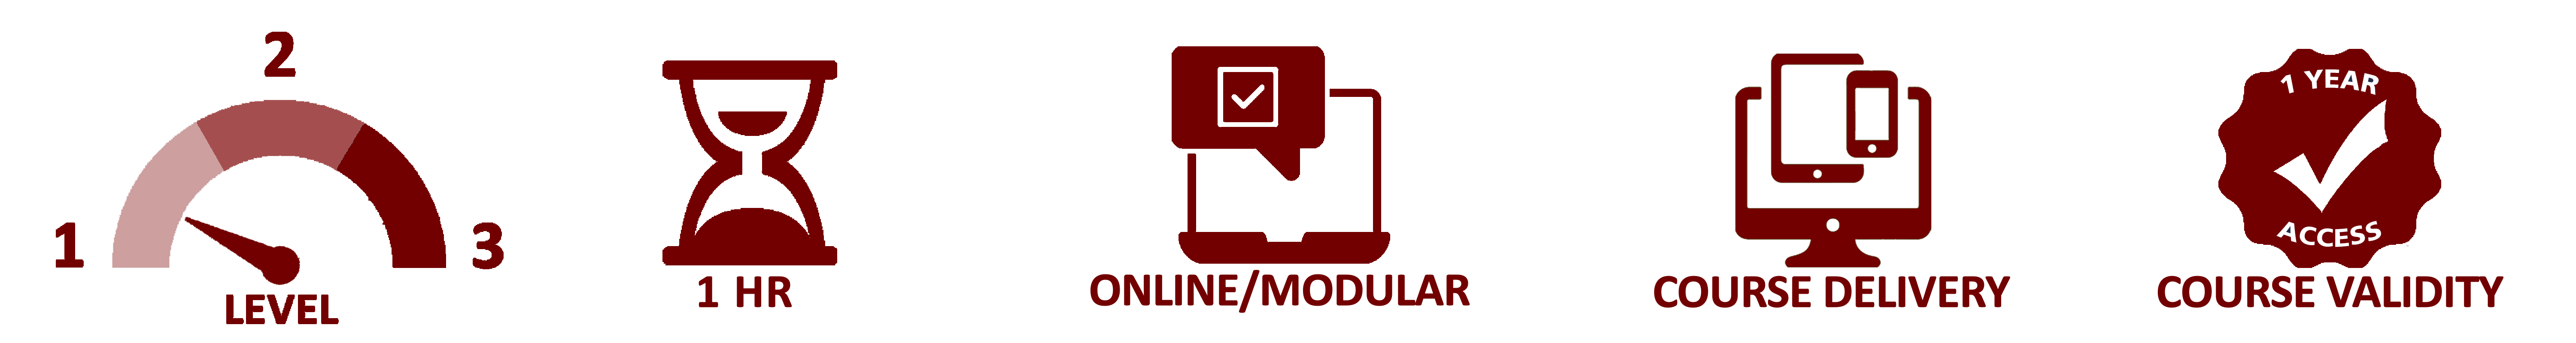 Periodontal Treatment Guidance - Online Learning Courses - E-Learning Courses - Mandatory Compliance UK-